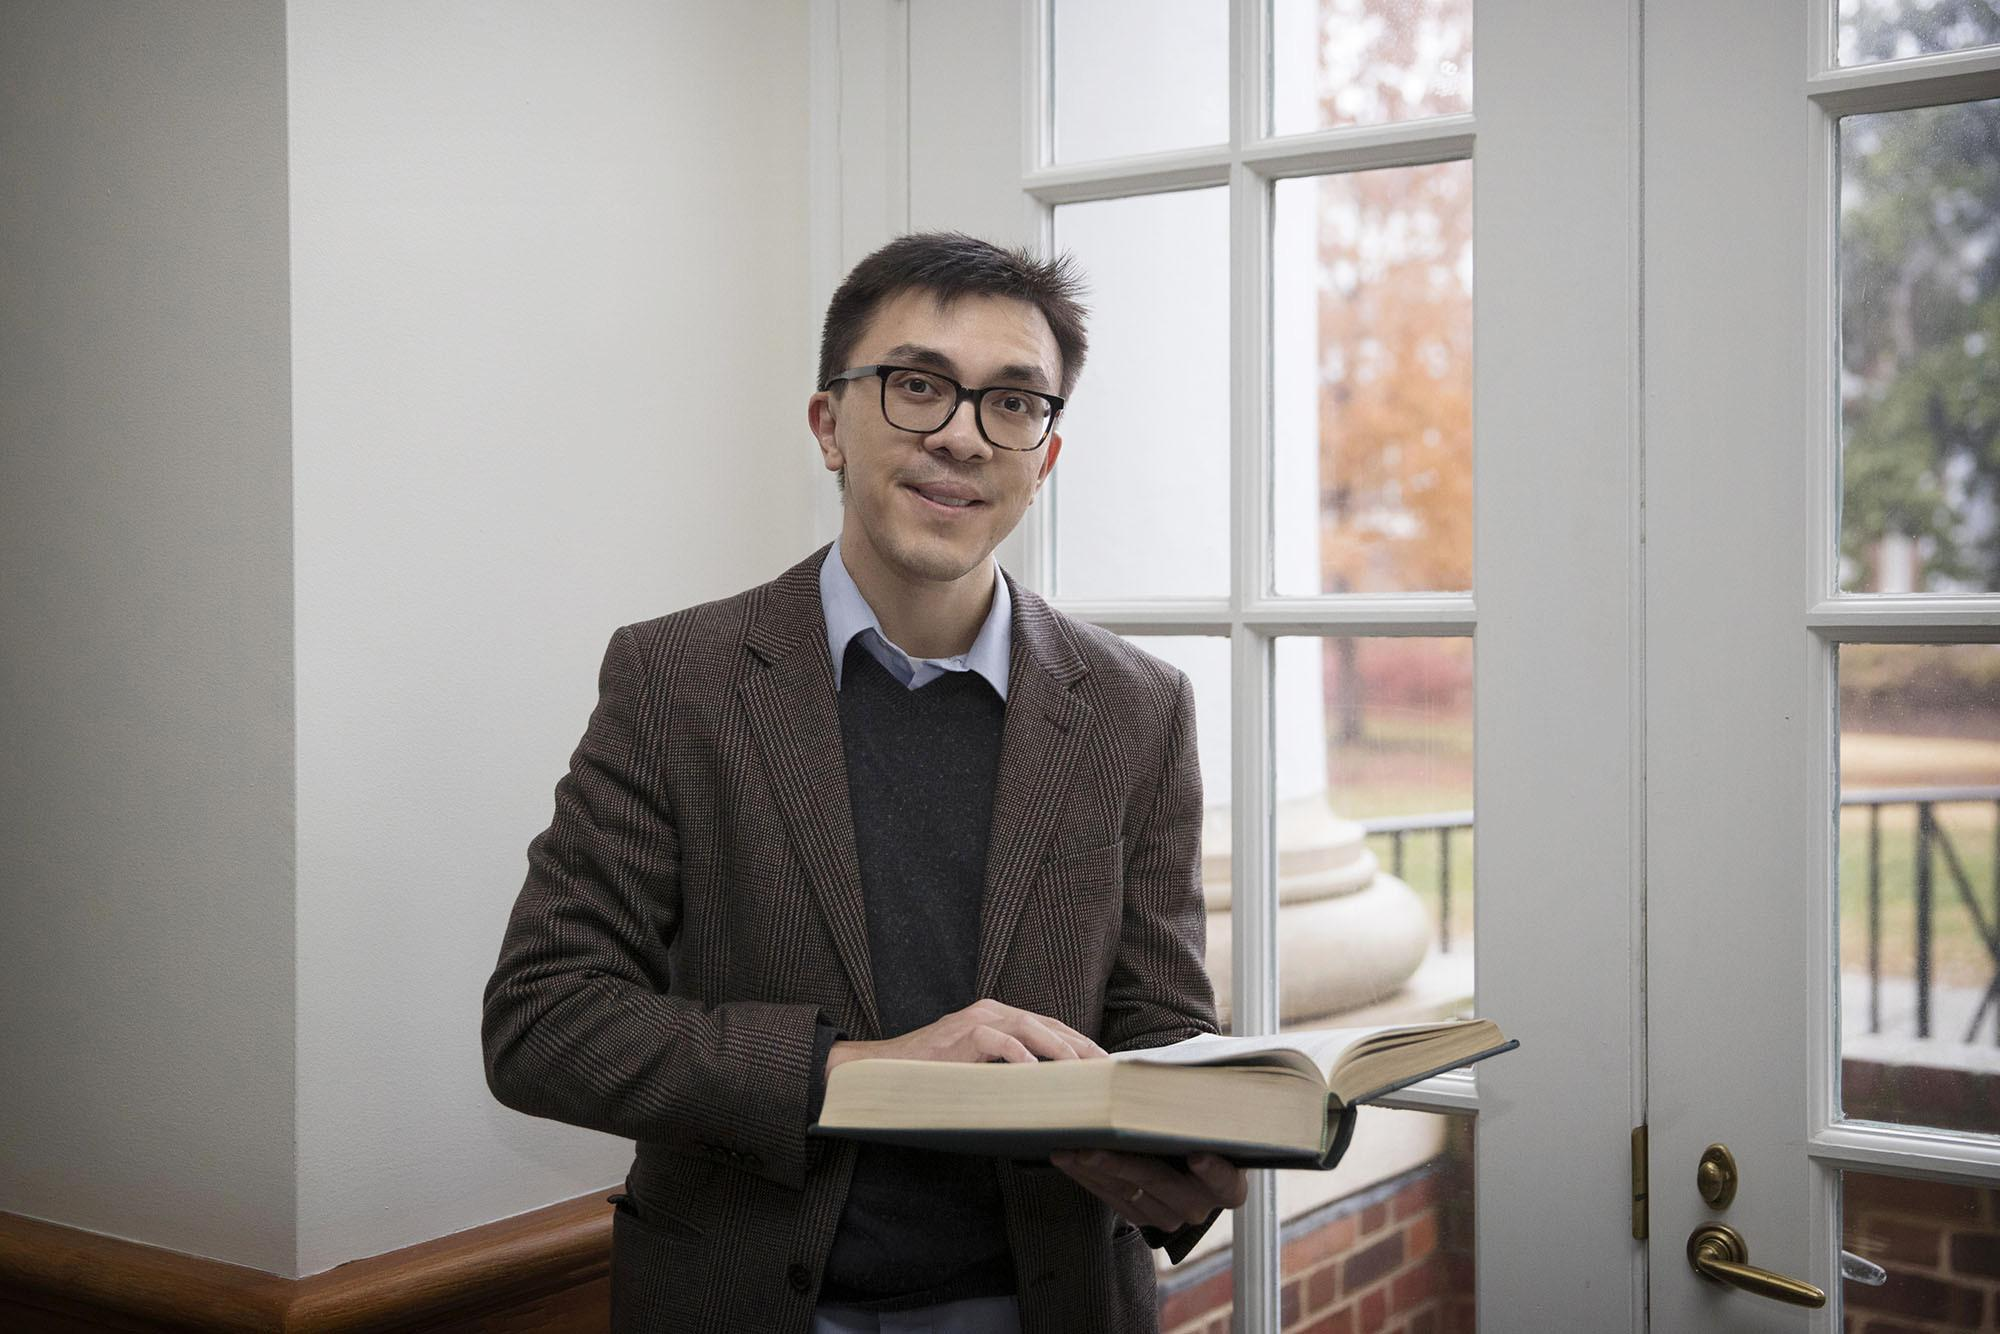 Economist Eric Chyn researches the impact of large-scale government programs like public housing assistance.